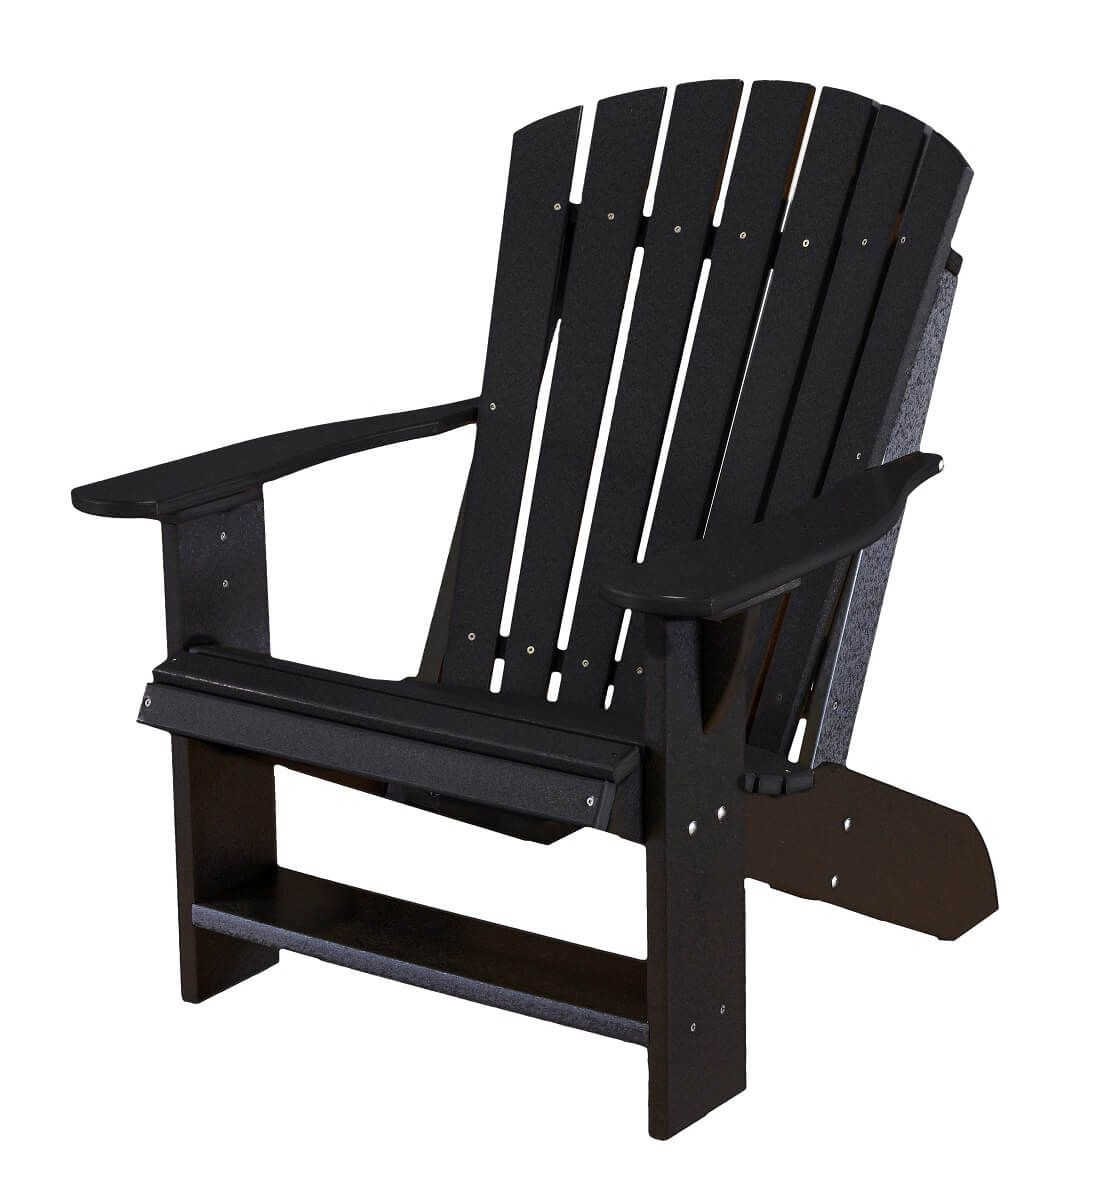 Black Sidra Adirondack Chair